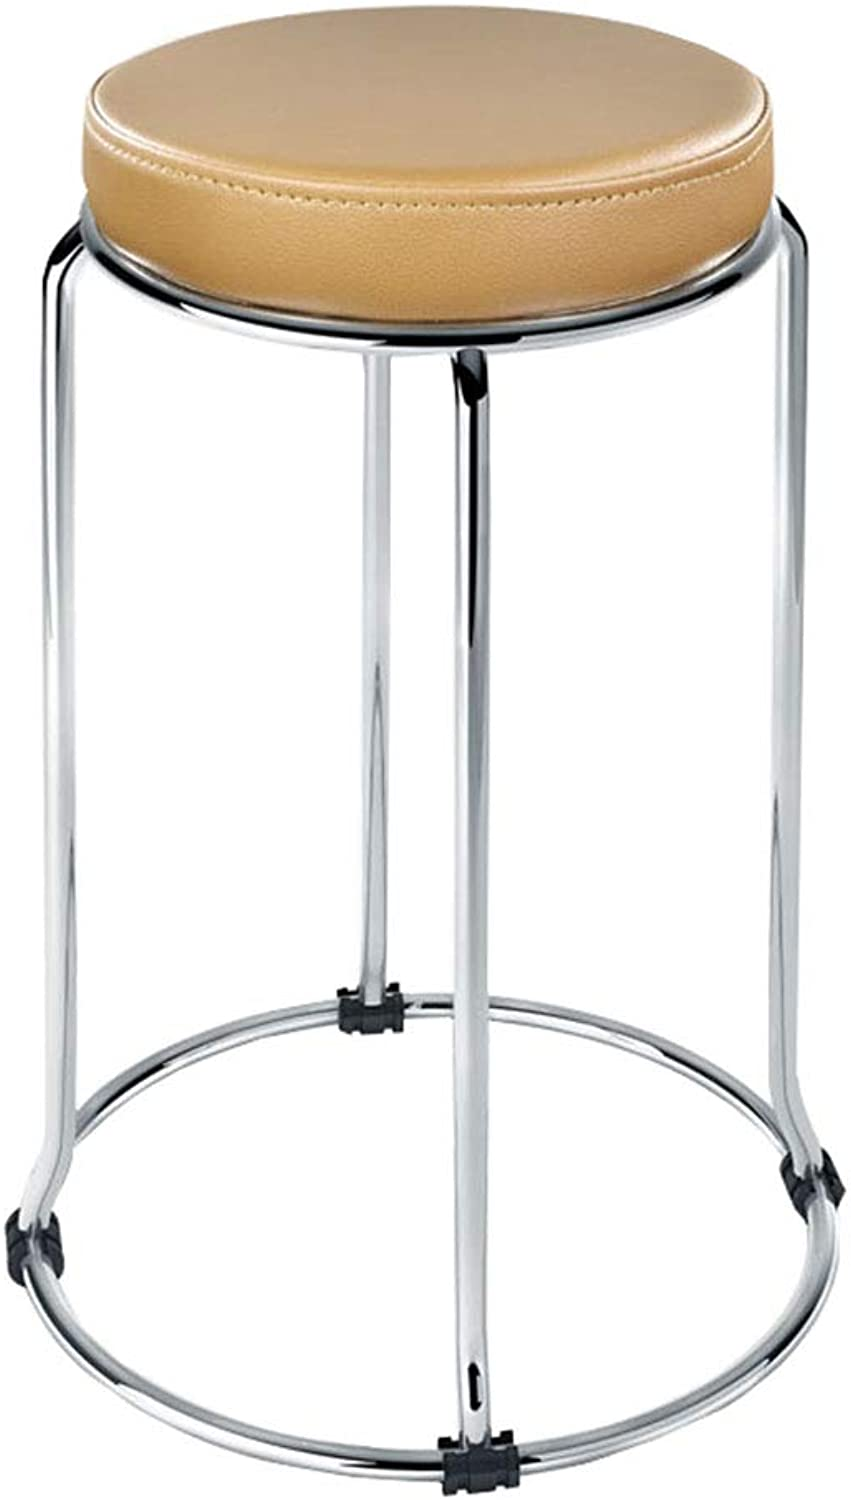 Small Stool Simple and Stylish Folding Bar Stool Kitchen High Stool Dining Small Seat